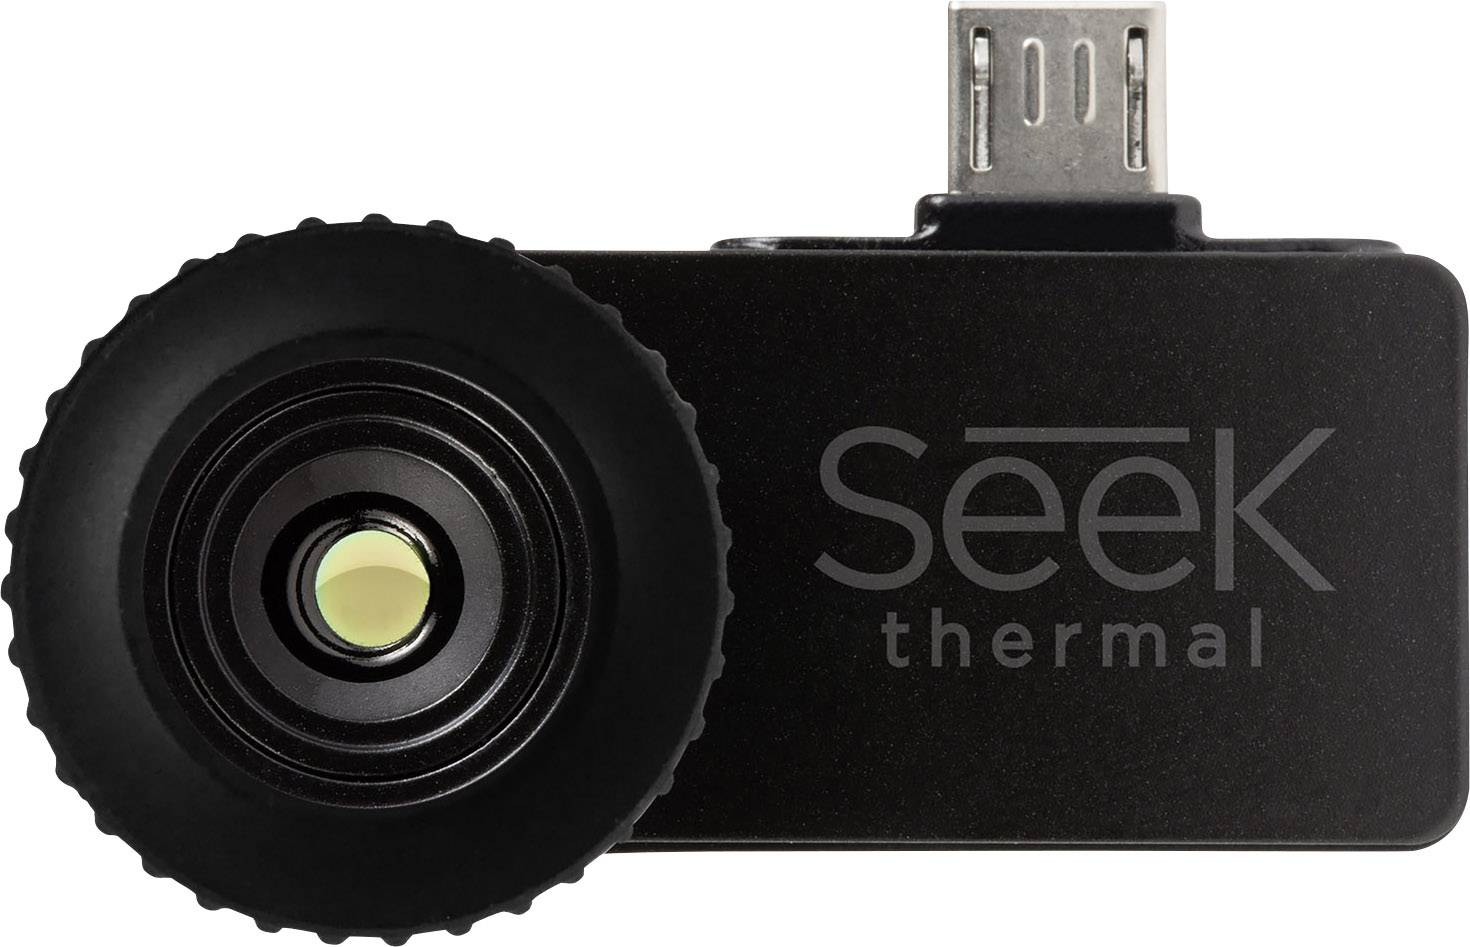 Termokamera Seek Thermal Compact Android SK1001A, 206 x 156 pix